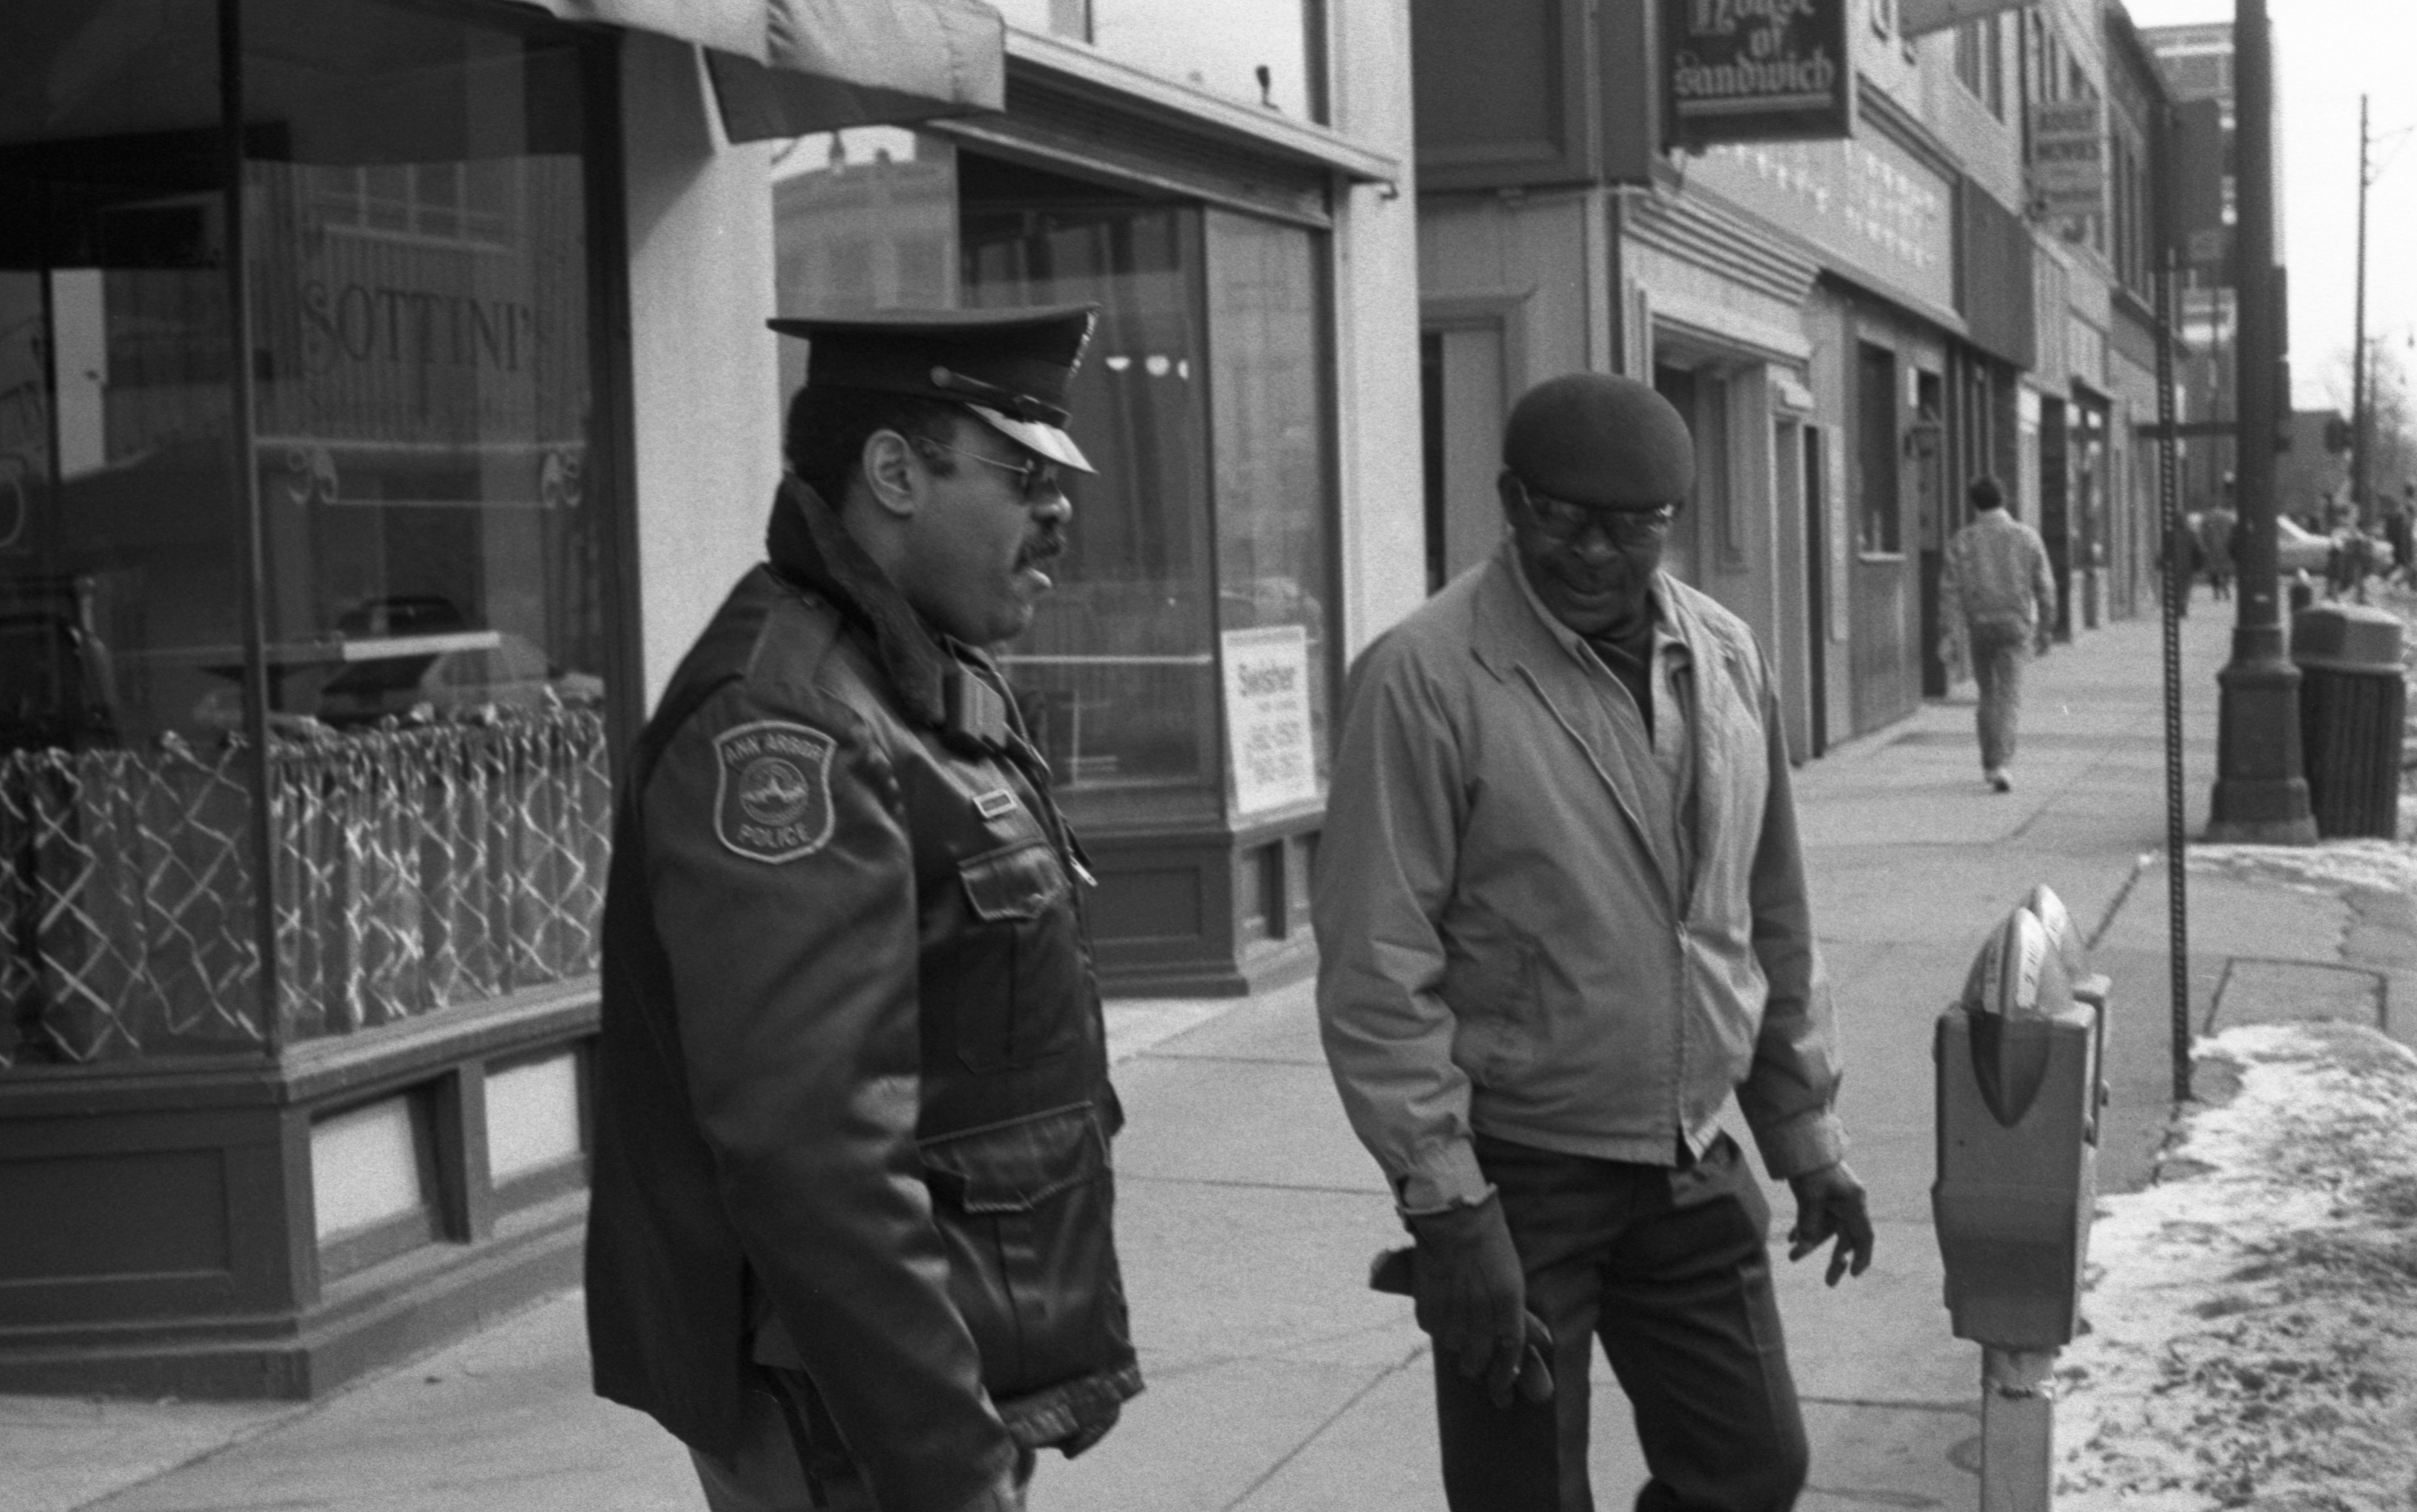 Ann Arbor Police Officer Richard A. Blake Walking Downtown Beat, February 1988 image